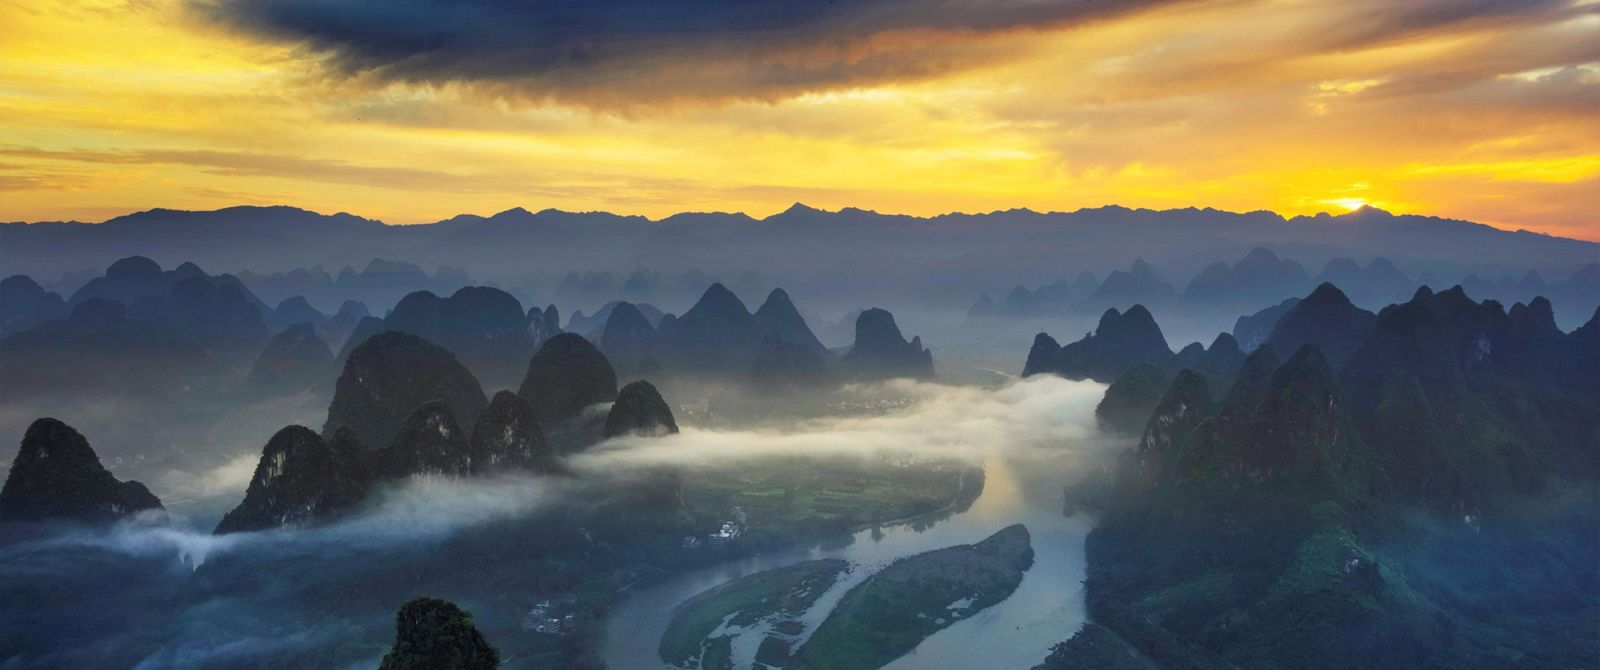 11 Day Wonders Of China